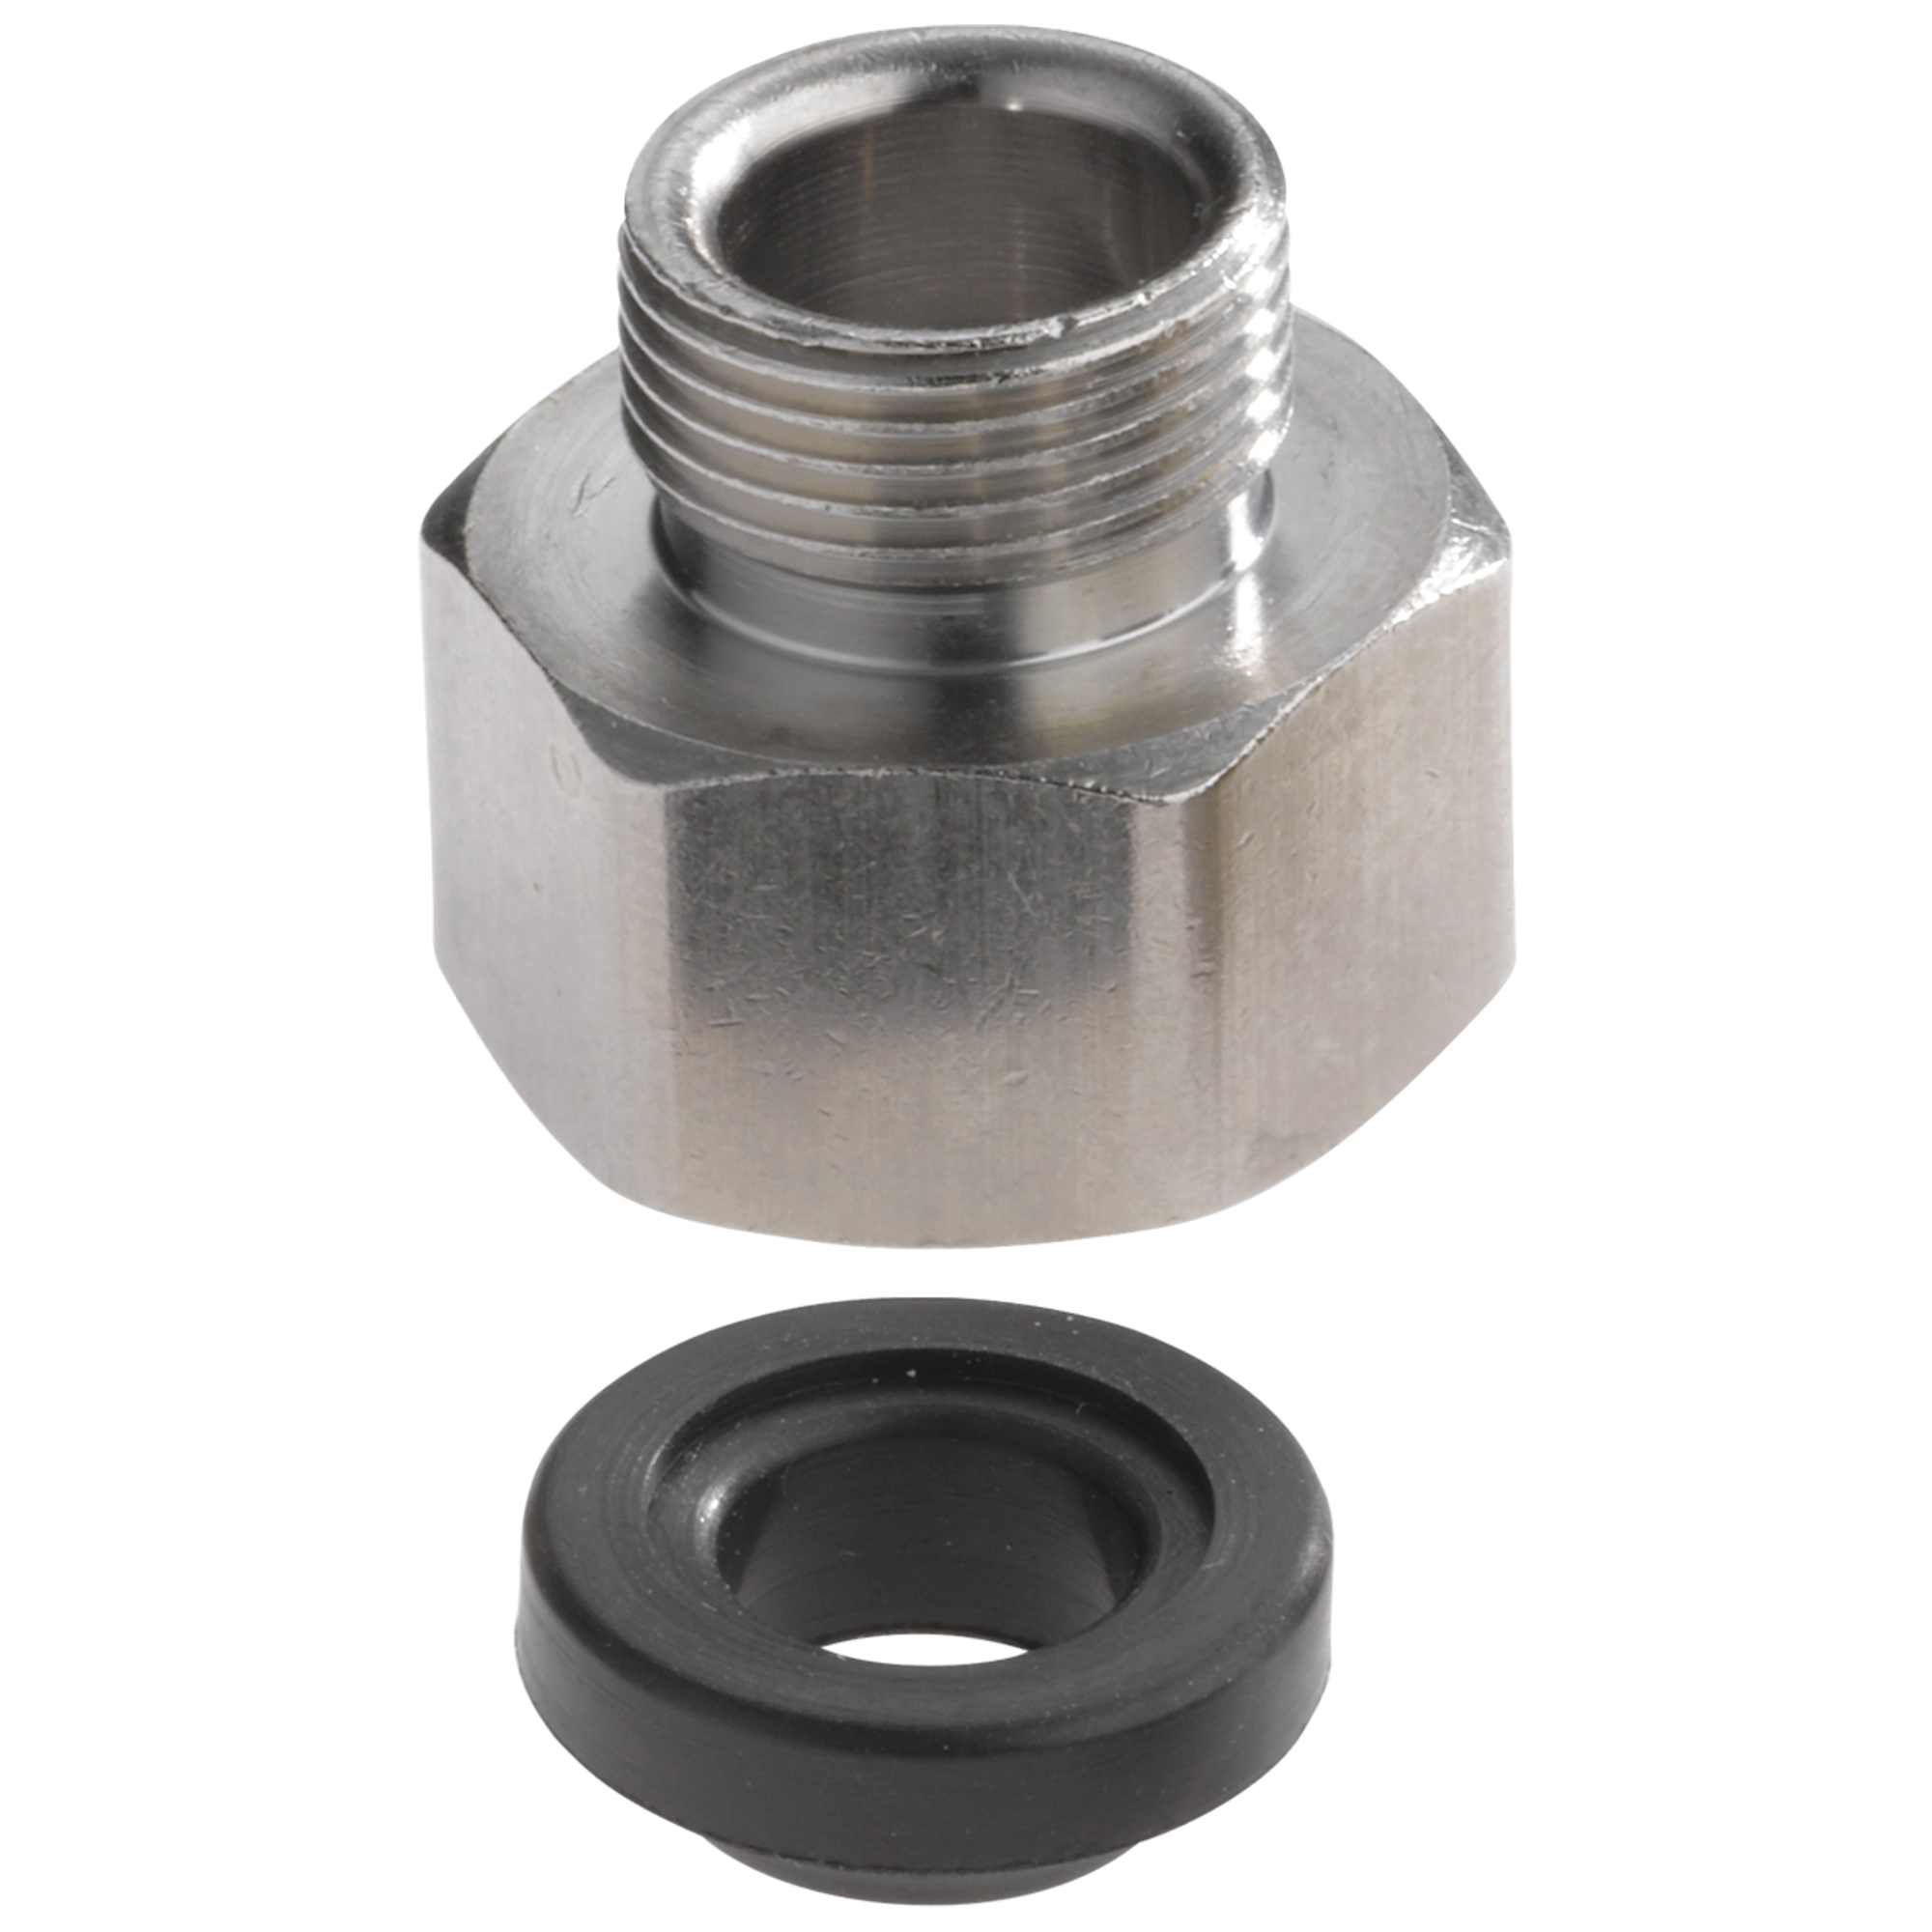 DELTA® RP63265 Slip Joint Adapter, 1/2 in, Domestic